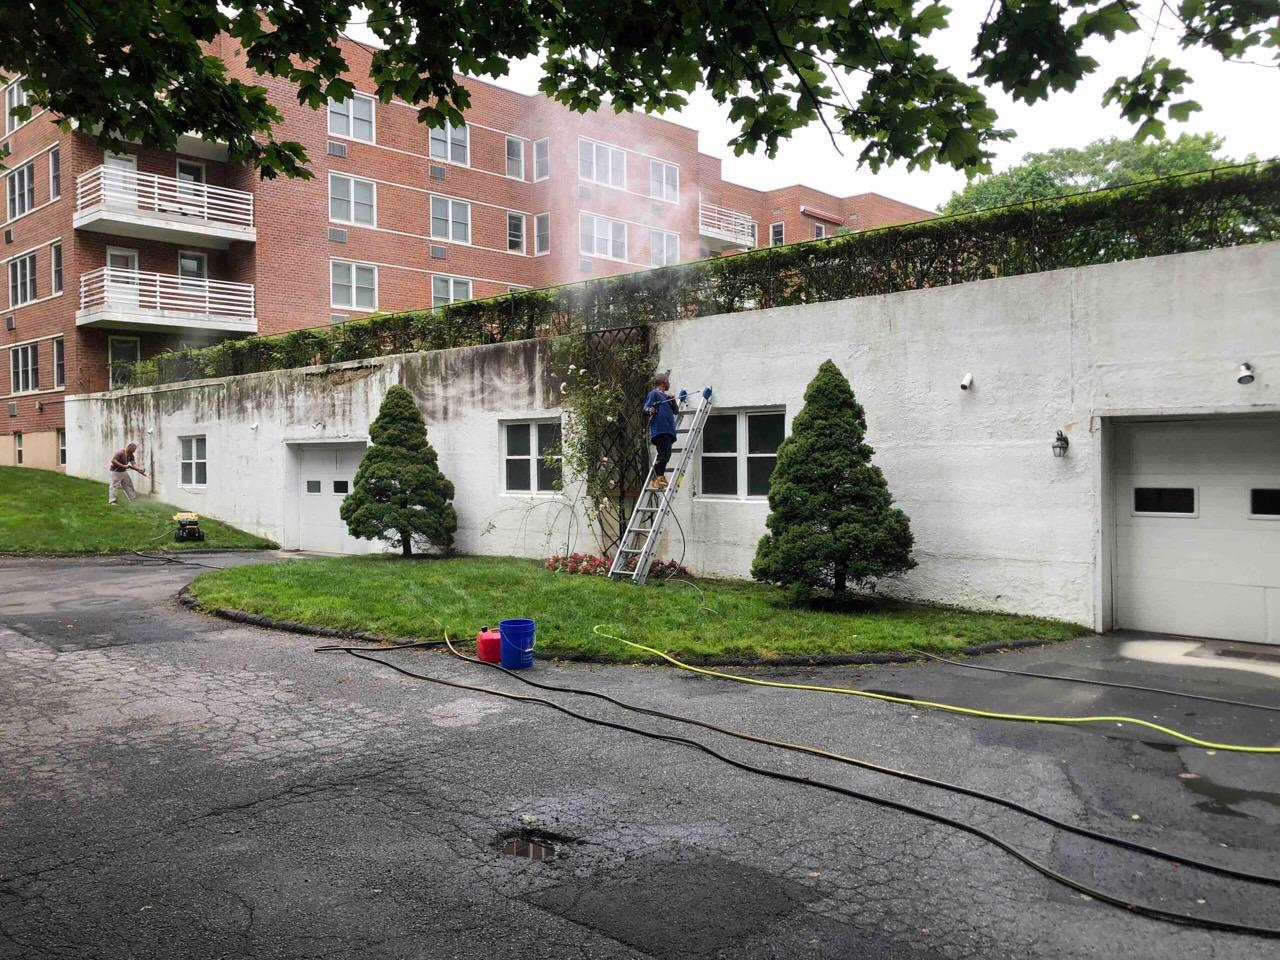 Power Washing Condos in Greenwich, CT - After Photo